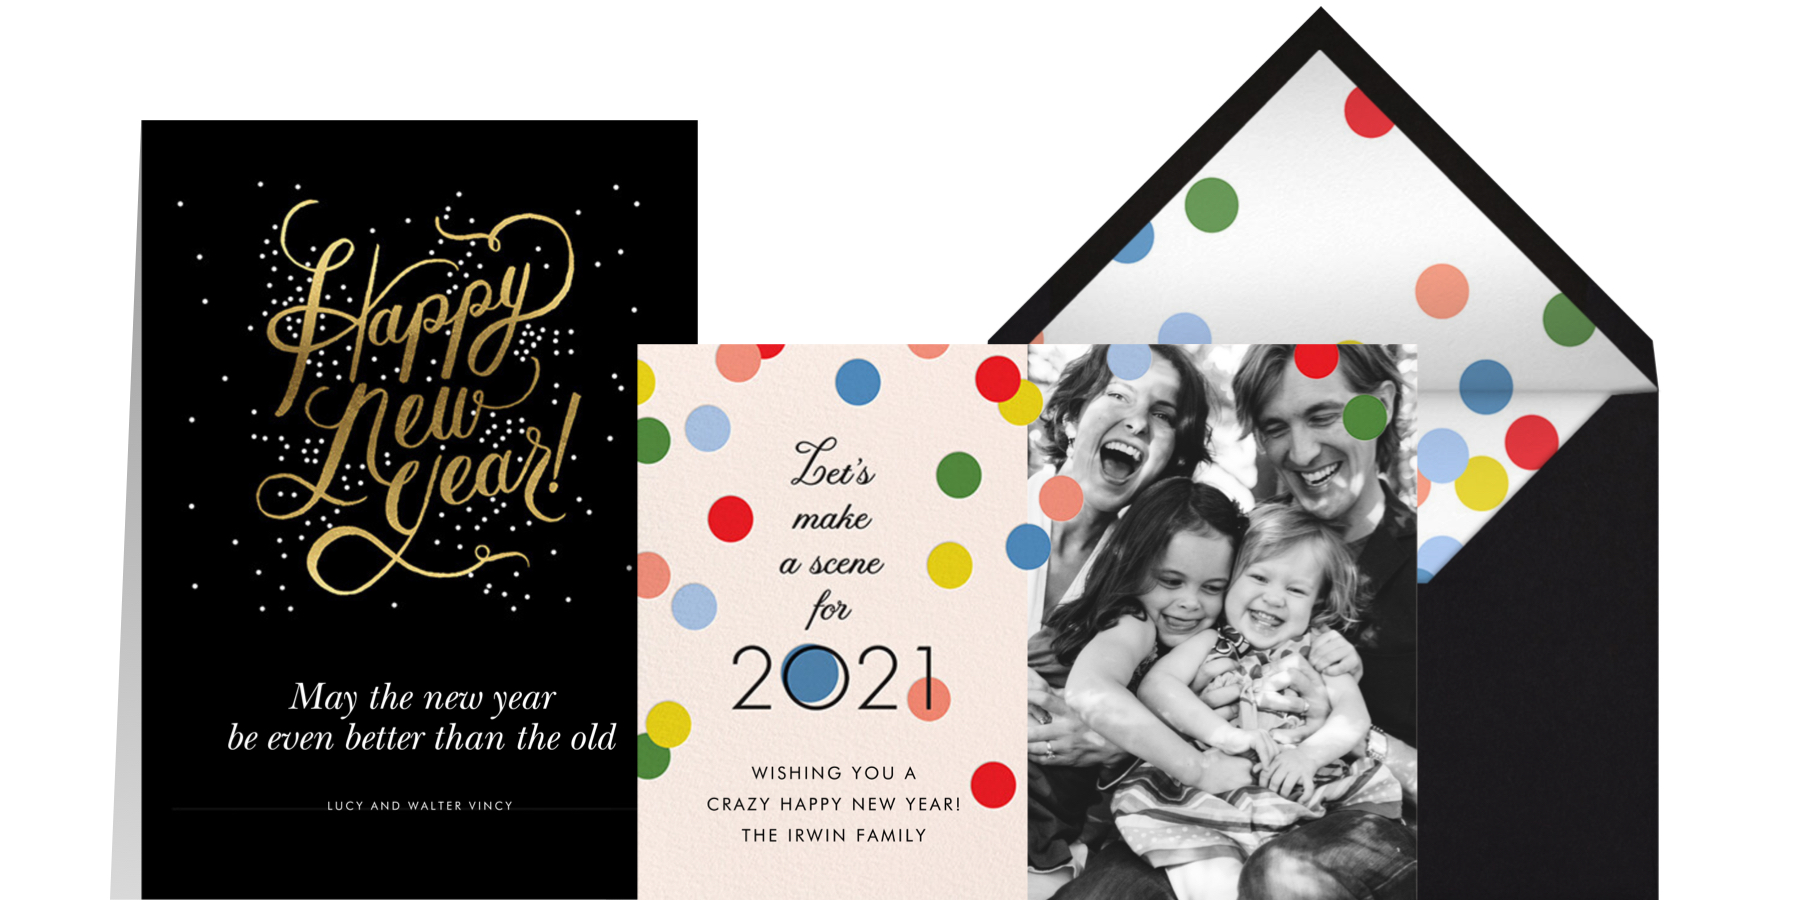 New Years greeting cards with script, confetti, and family photo